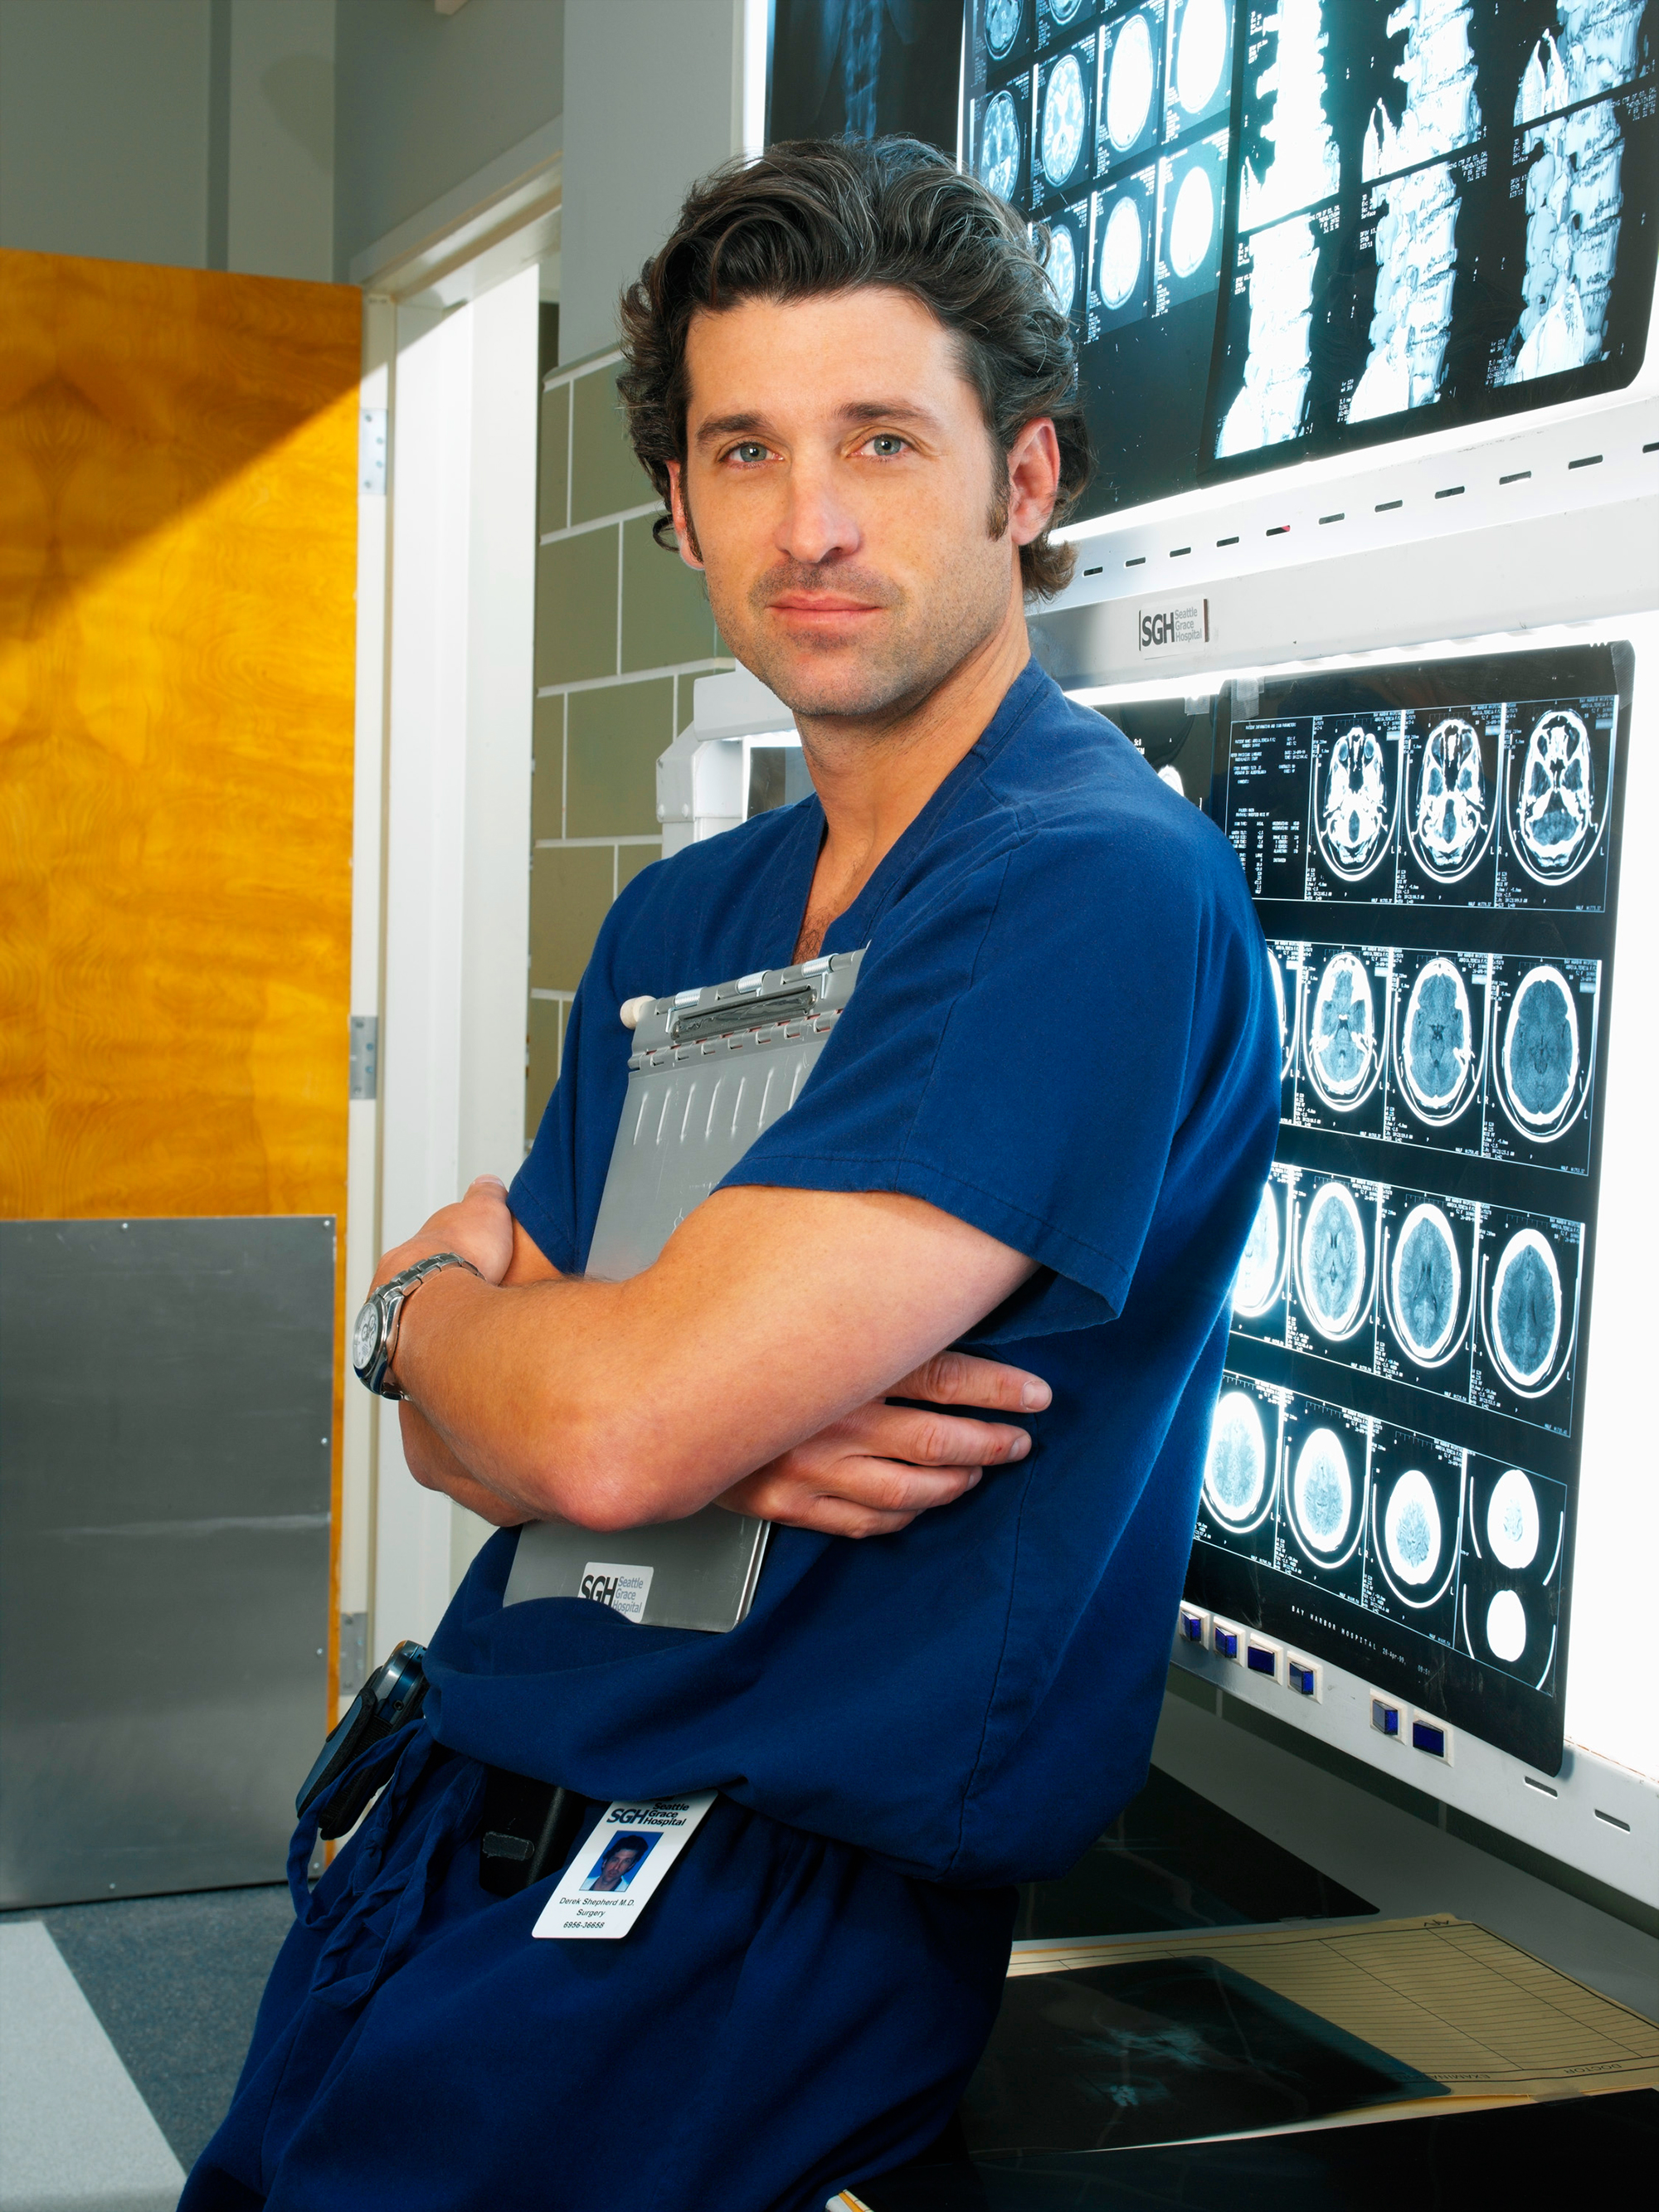 A Timeline 'Grey's Anatomy' Behind-the-Scenes Drama - News that Dempsey was leaving Grey's Anatomy leaked hours before his final episode aired in April 2015 after an Entertainment Weekly cover about his exit — his character met a tragic end — arrived a day early for many subscribers.